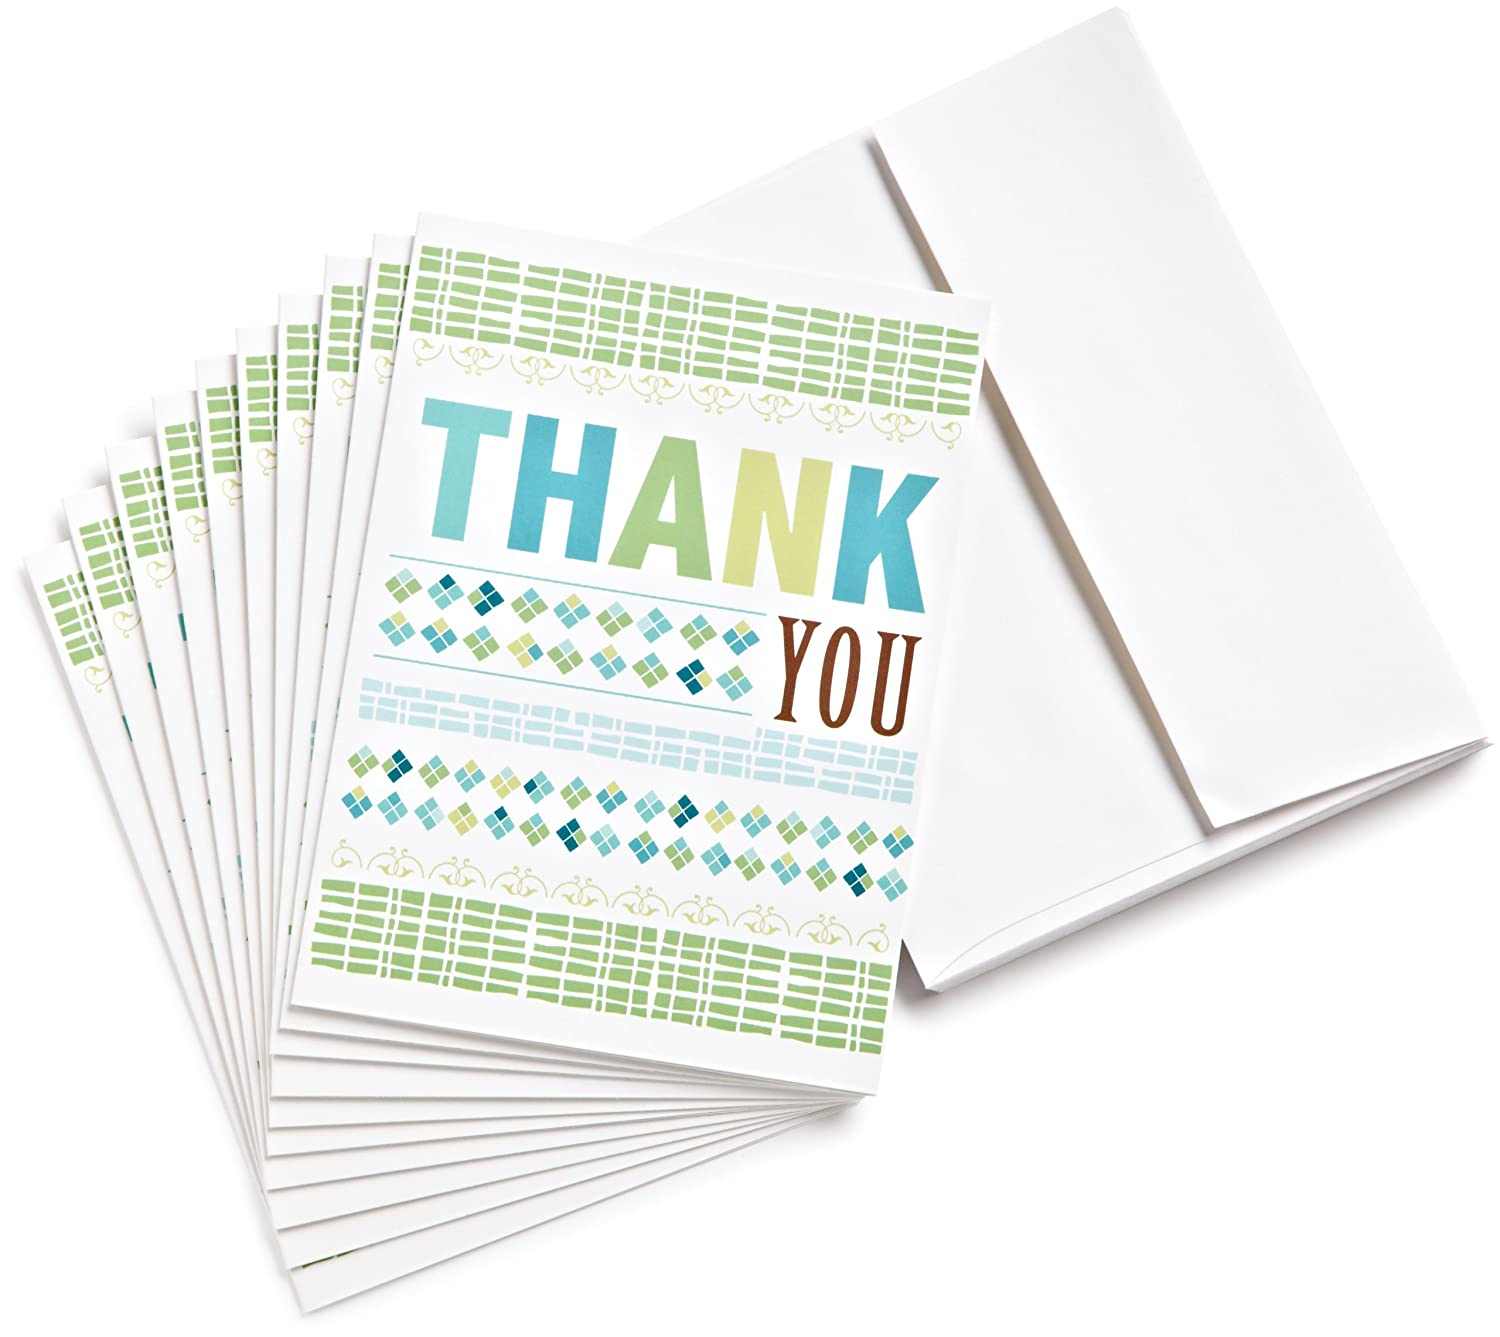 Amazon.com $100 Gift Cards, Pack of 10 with Greeting Cards (Thank You Design)